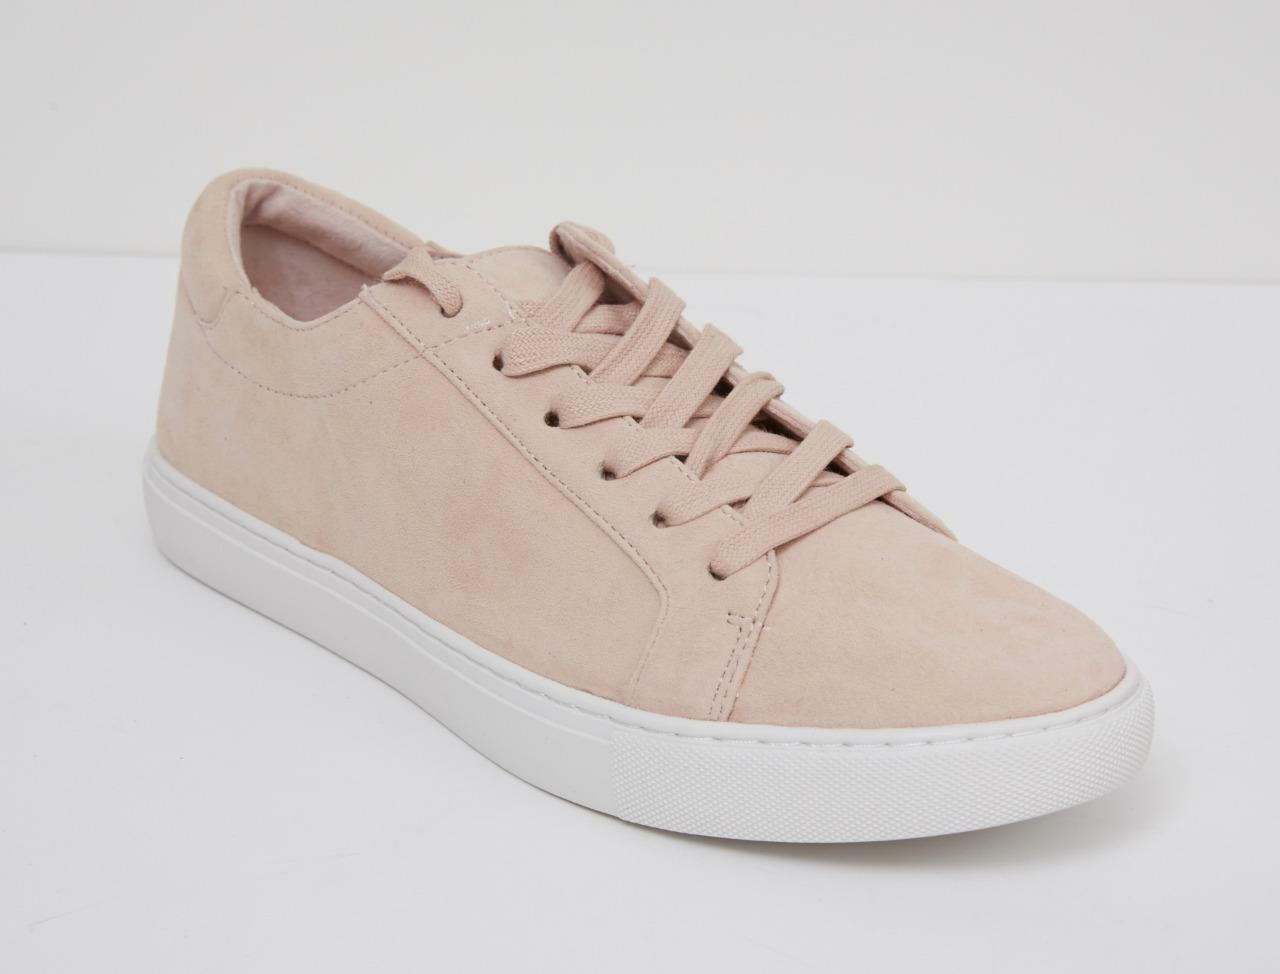 KENNETH COLE Womens KAM pink Pink bluesh Suede Sneaker Trainer 8 10 NEW+BOX